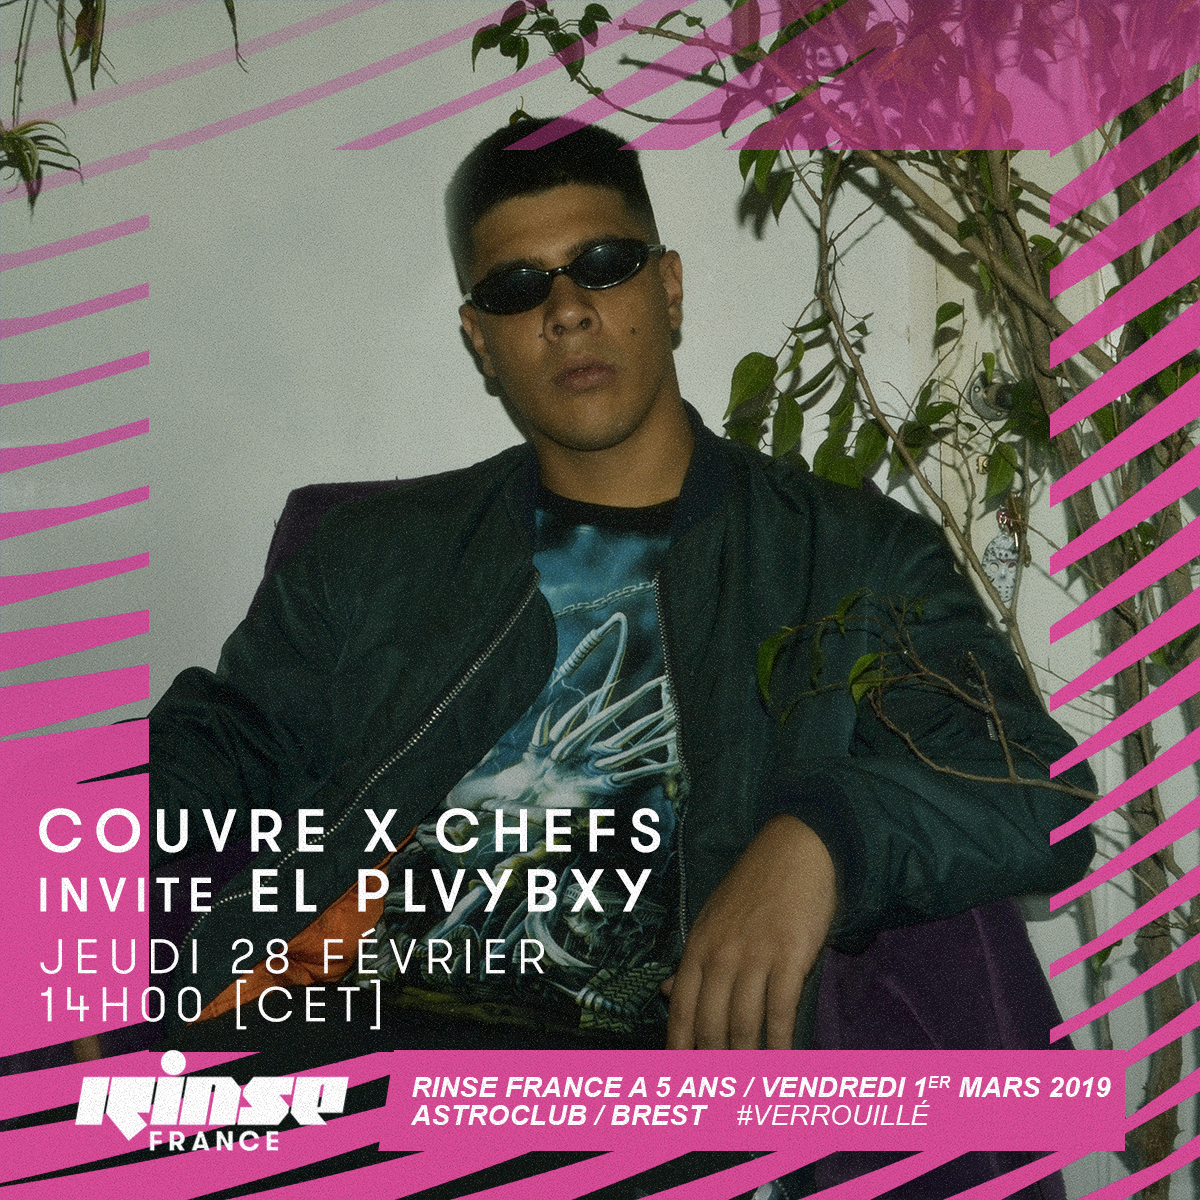 couvre x chefs rinse france el plvybxy